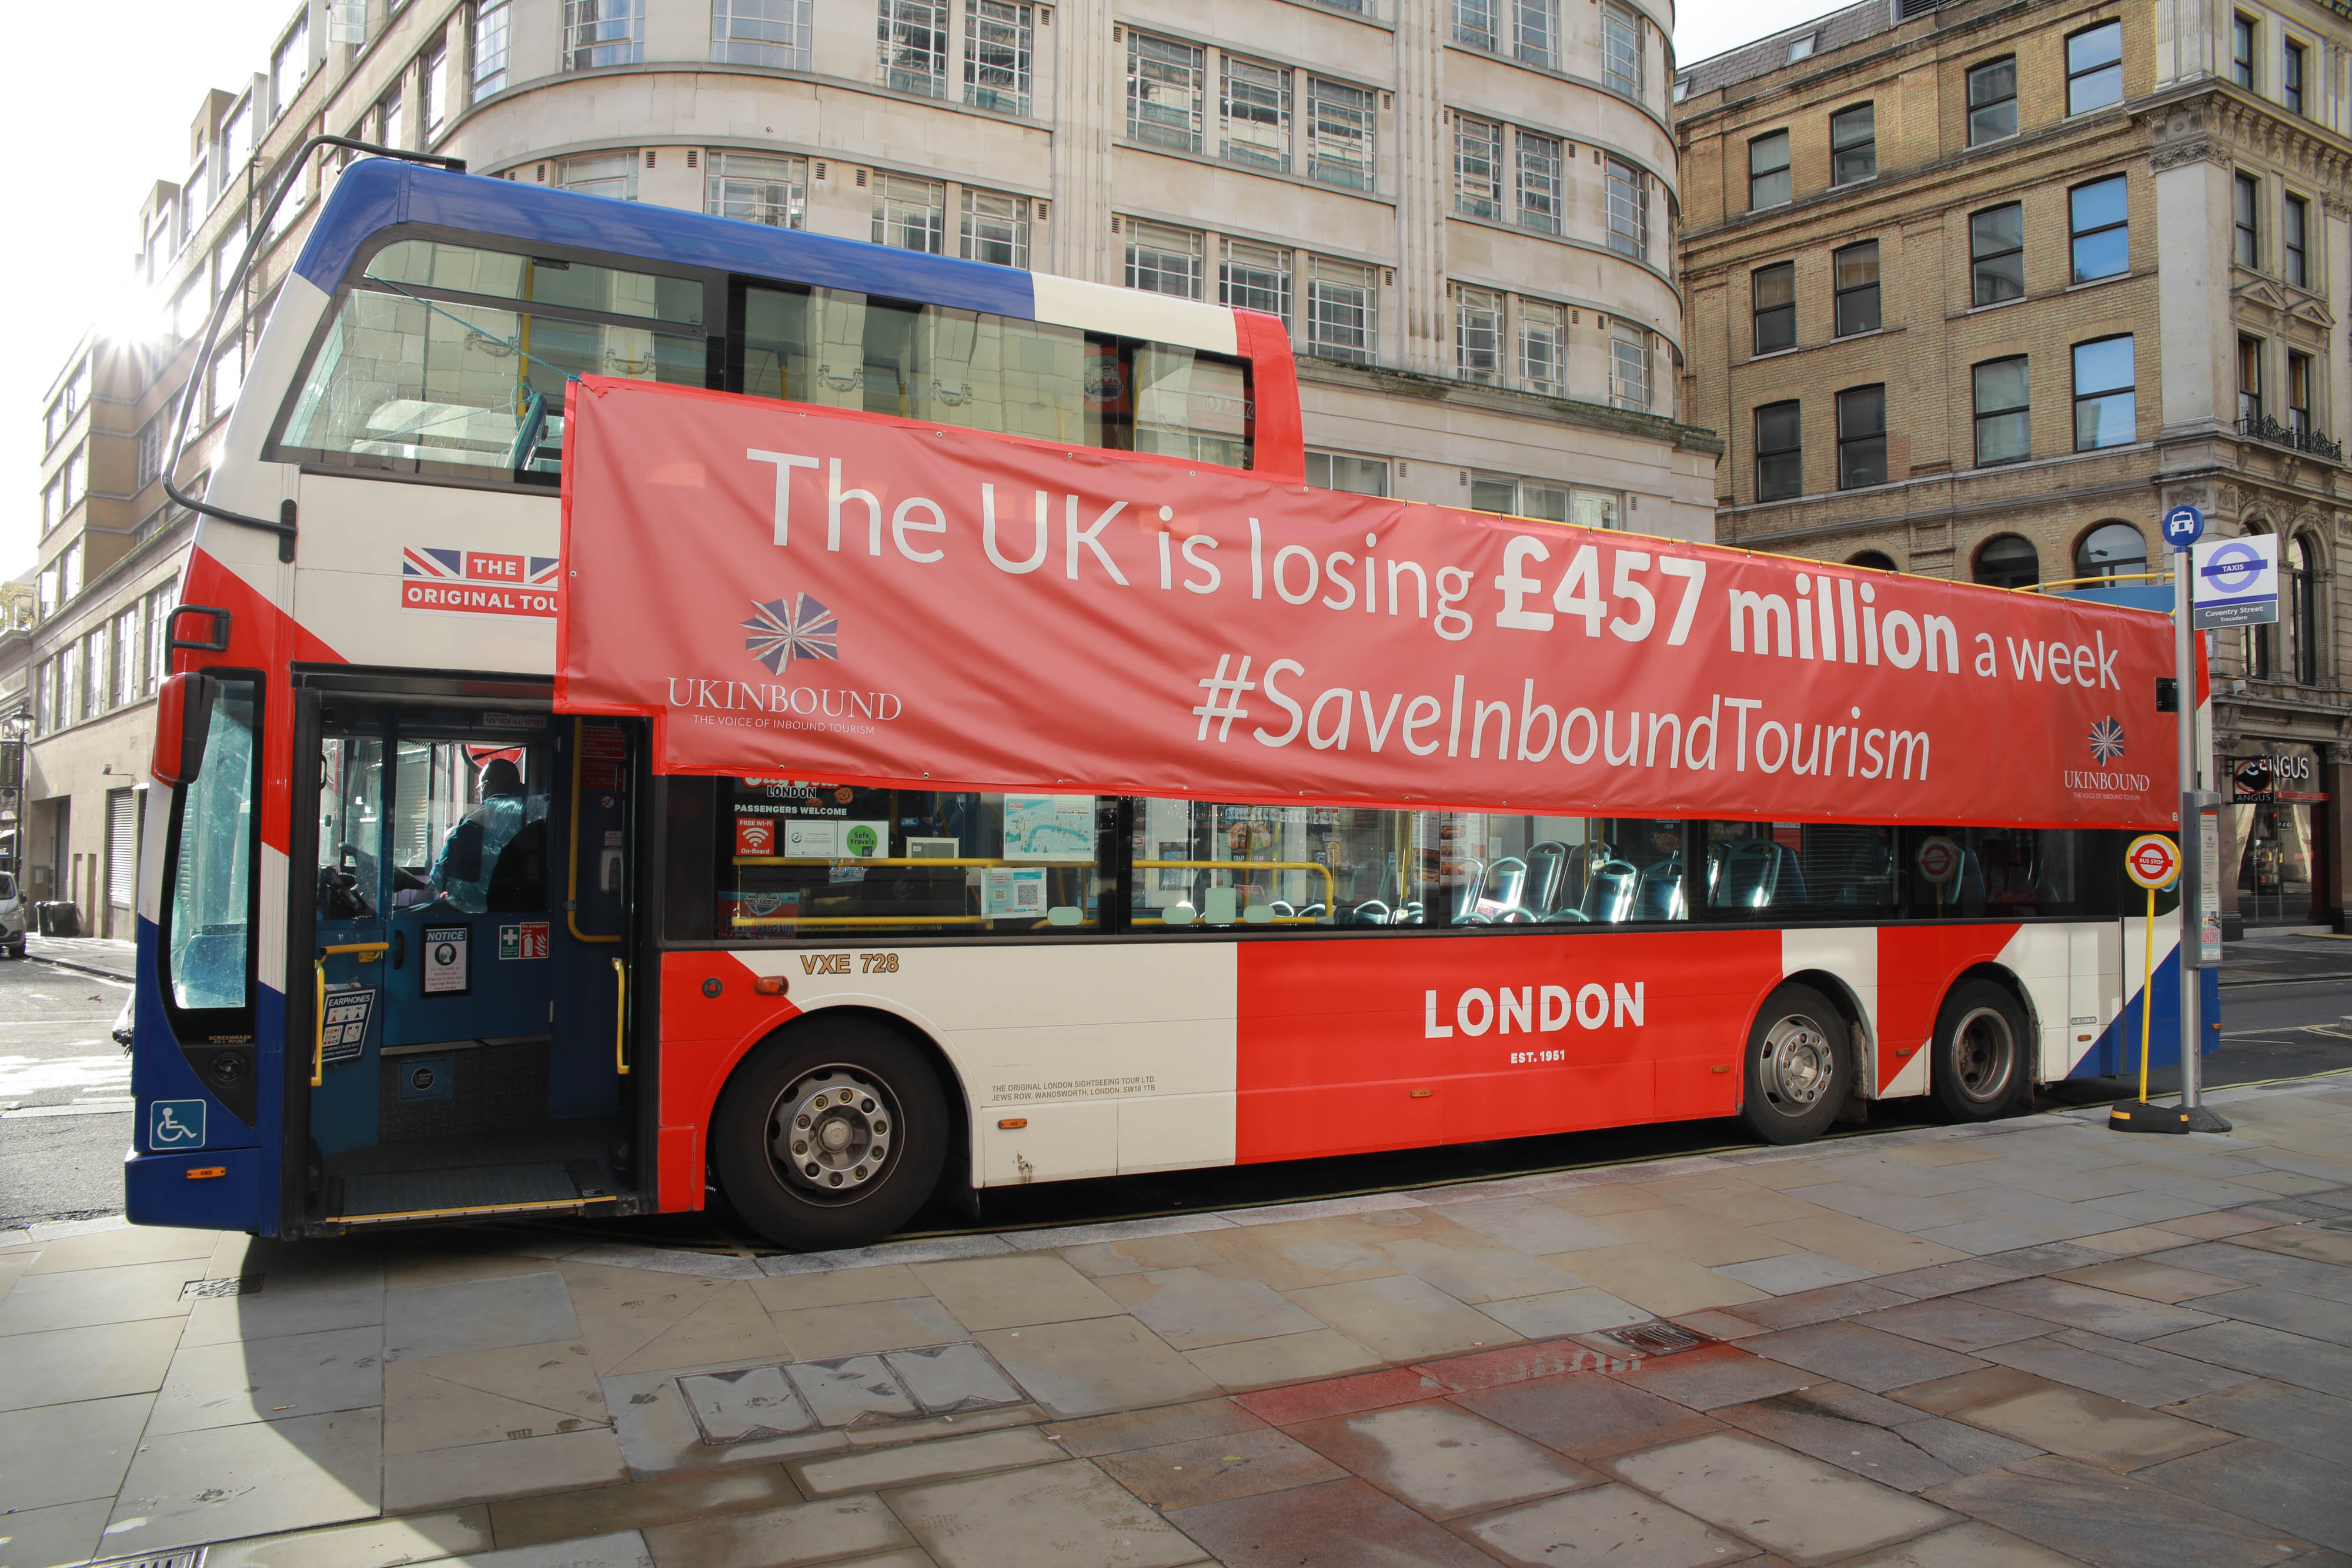 UK tourism groups excluded while 'sexual entertainment' venues supported